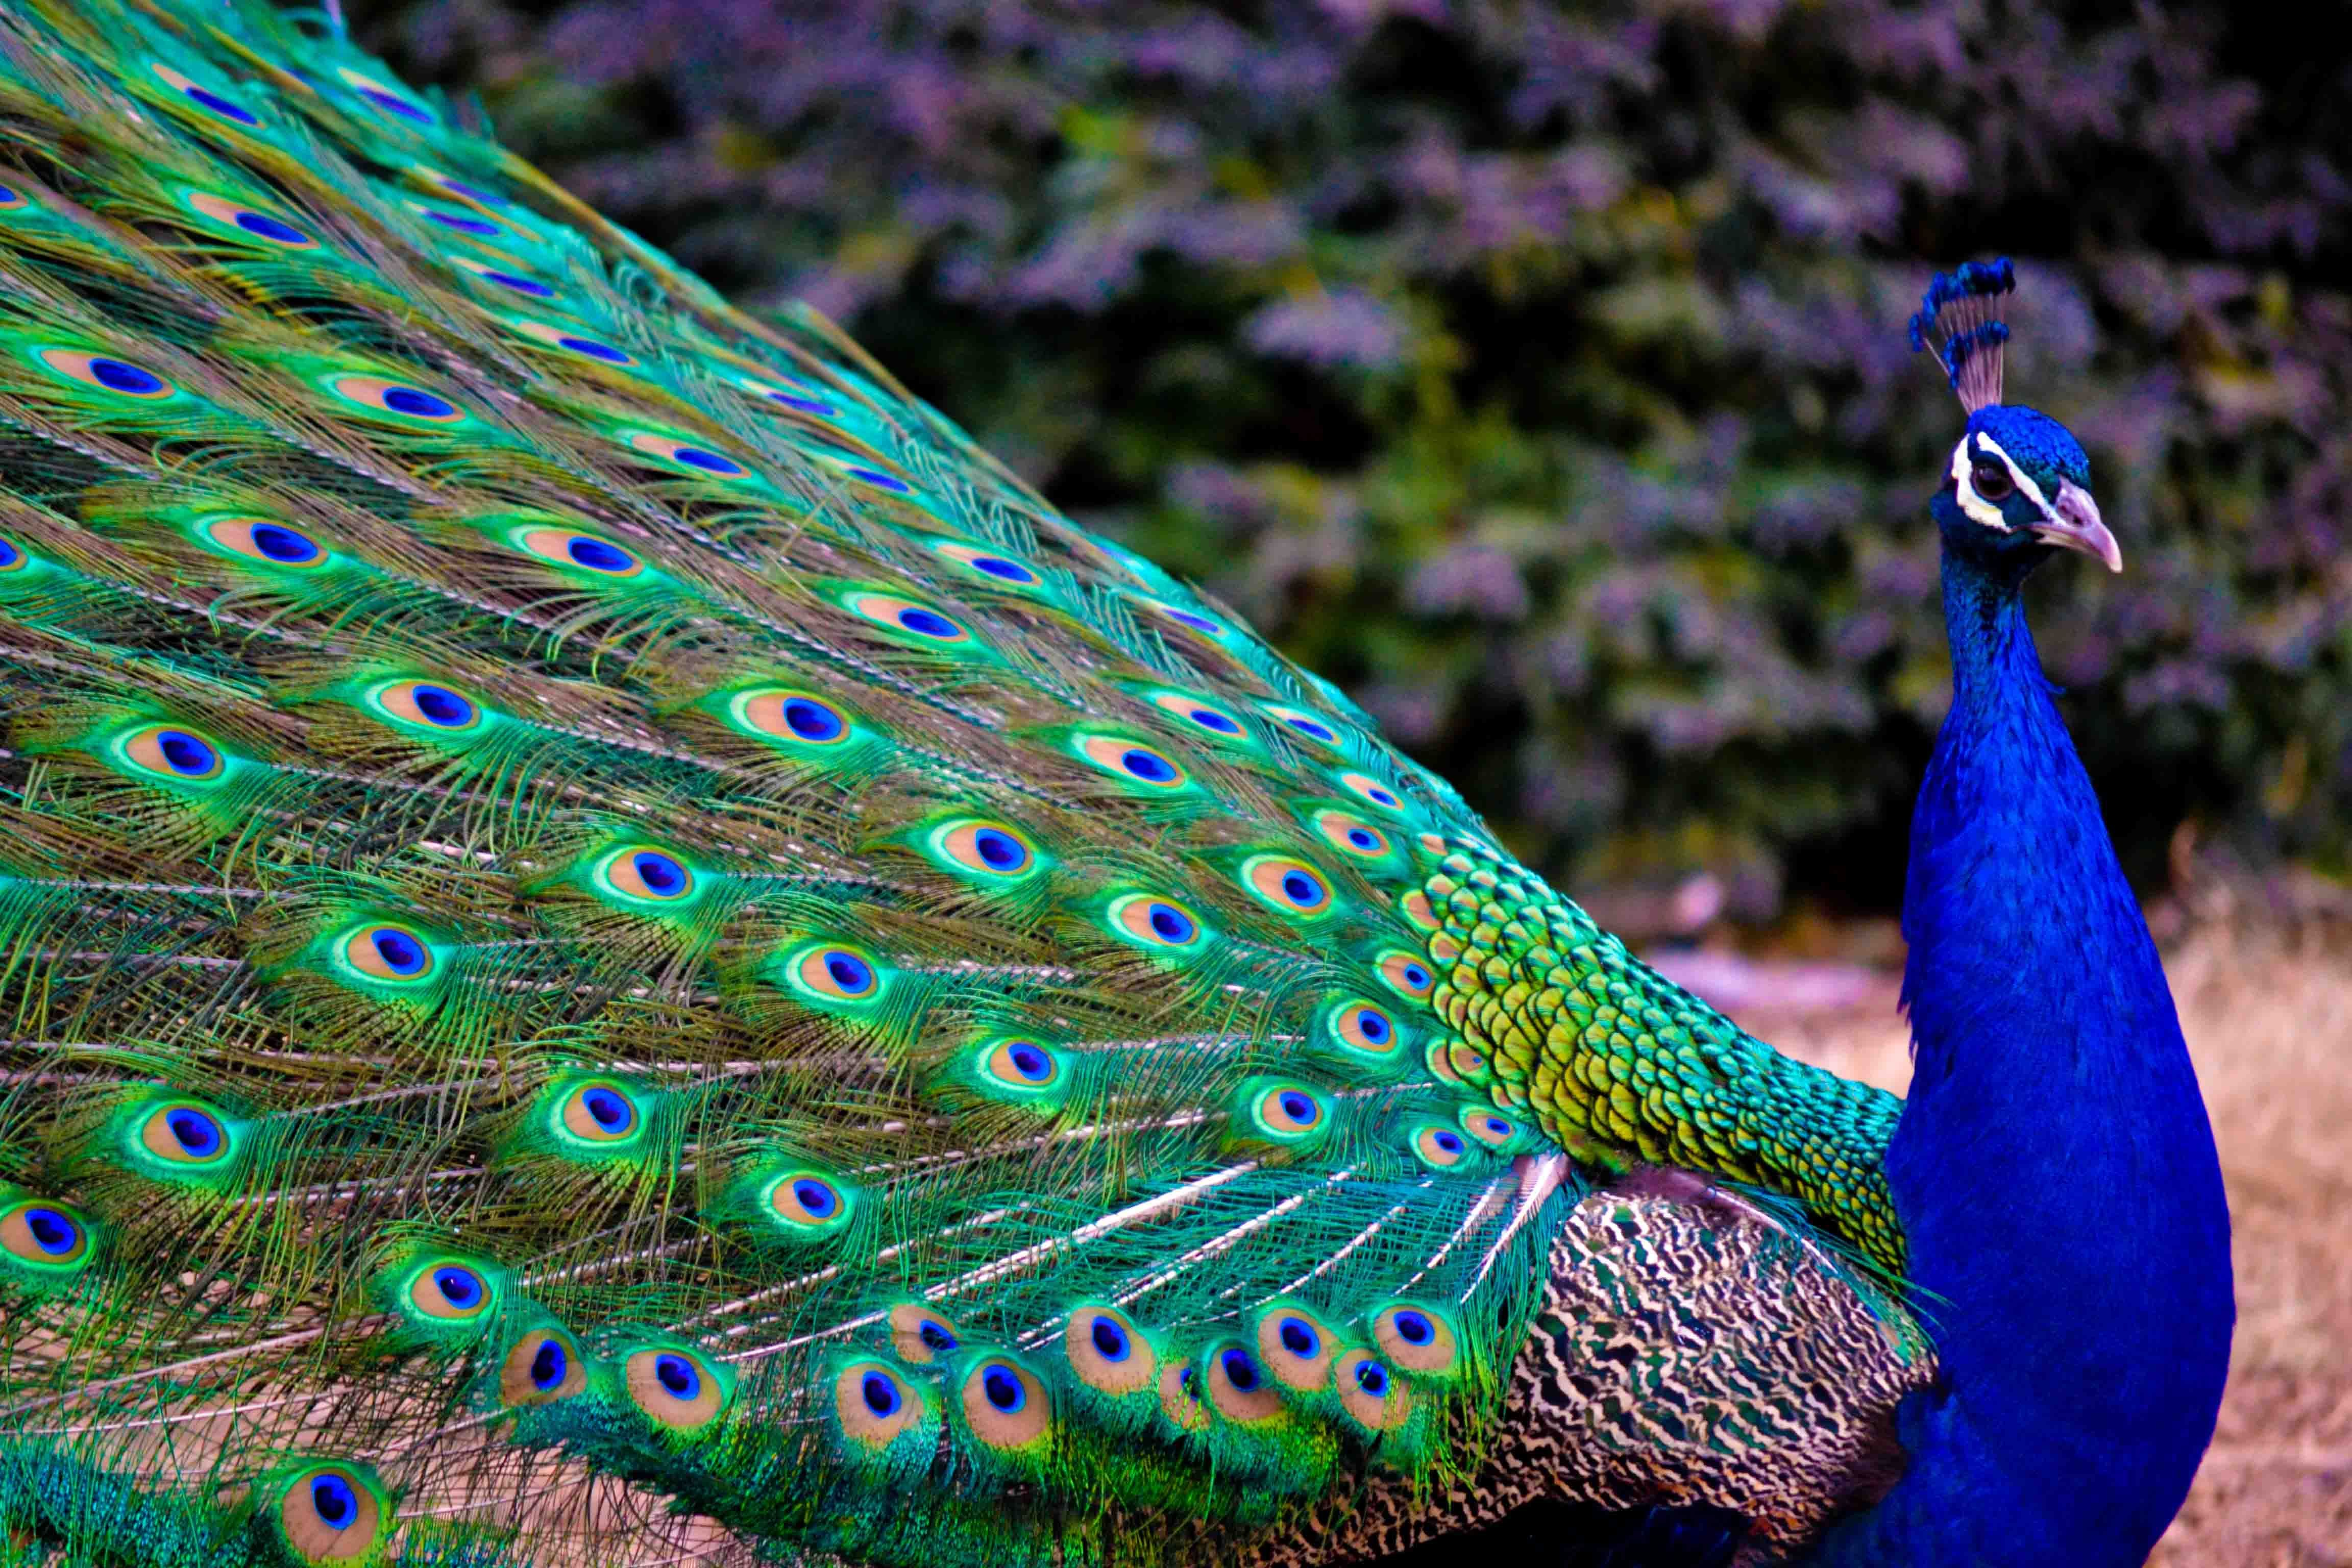 Wallpaper download new latest - Latest Peacock Hd Wallpapers Free Download New Hd Wallpapers Download